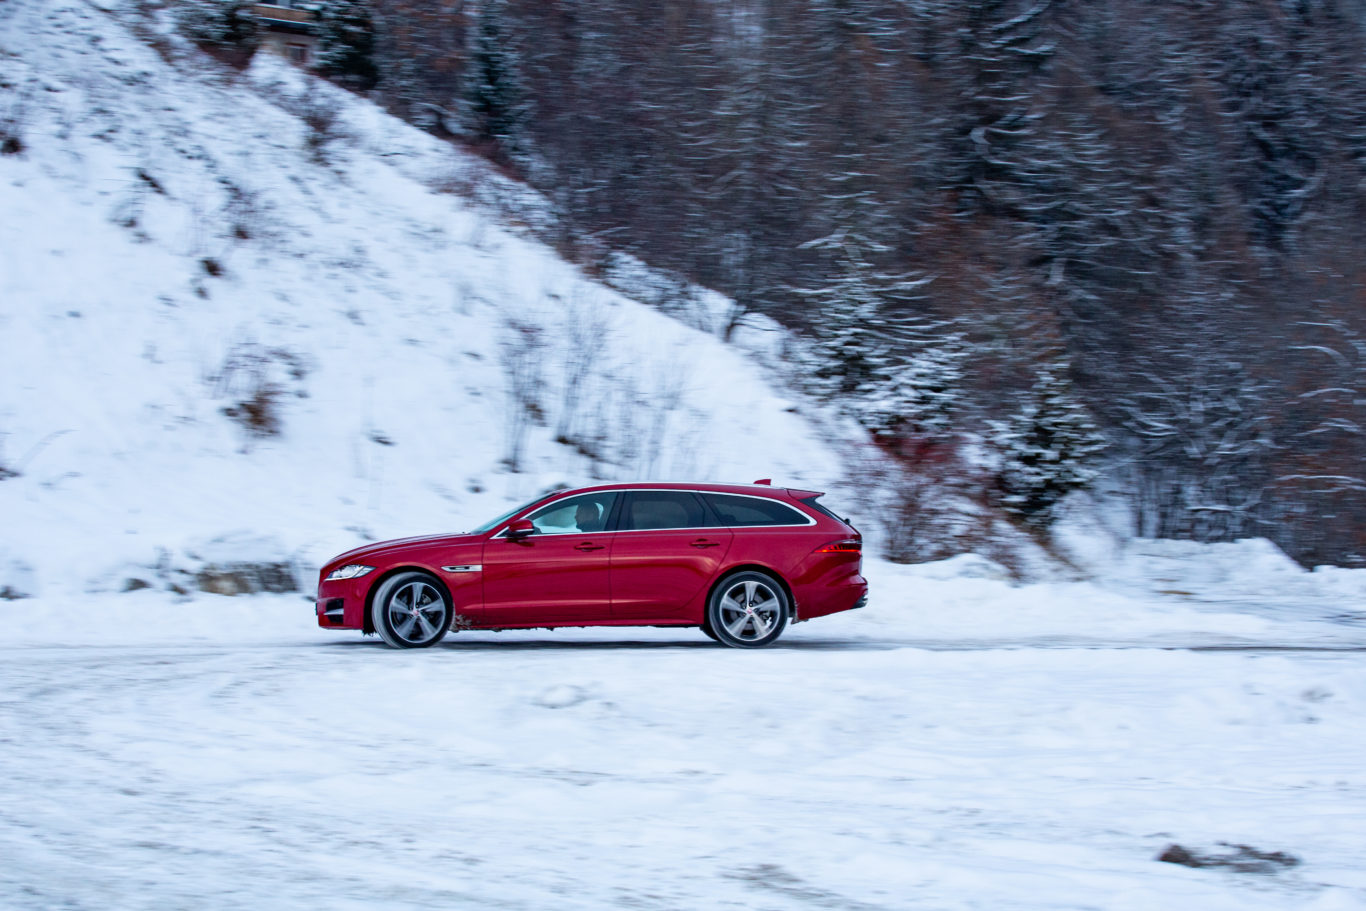 The Sportbrake offers more practicality than the regular XF